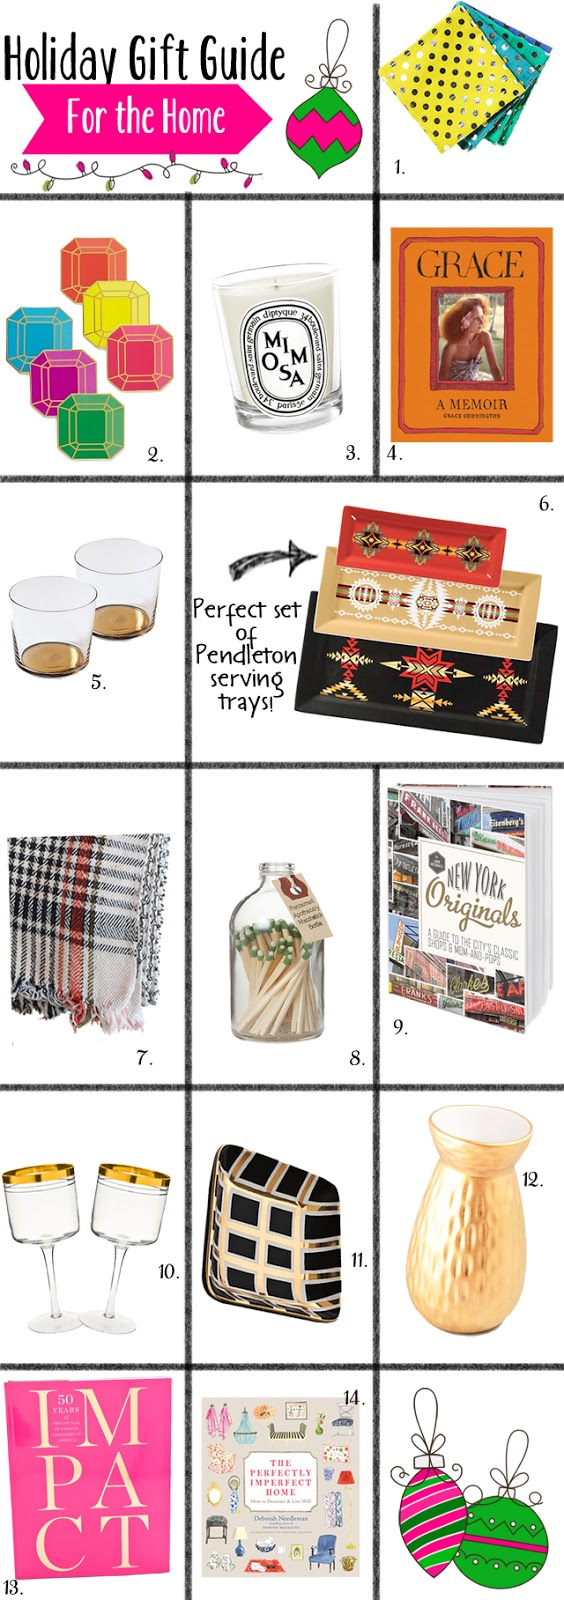 Holiday Gift Guide for the Home, Holiday Gift Guide 2012